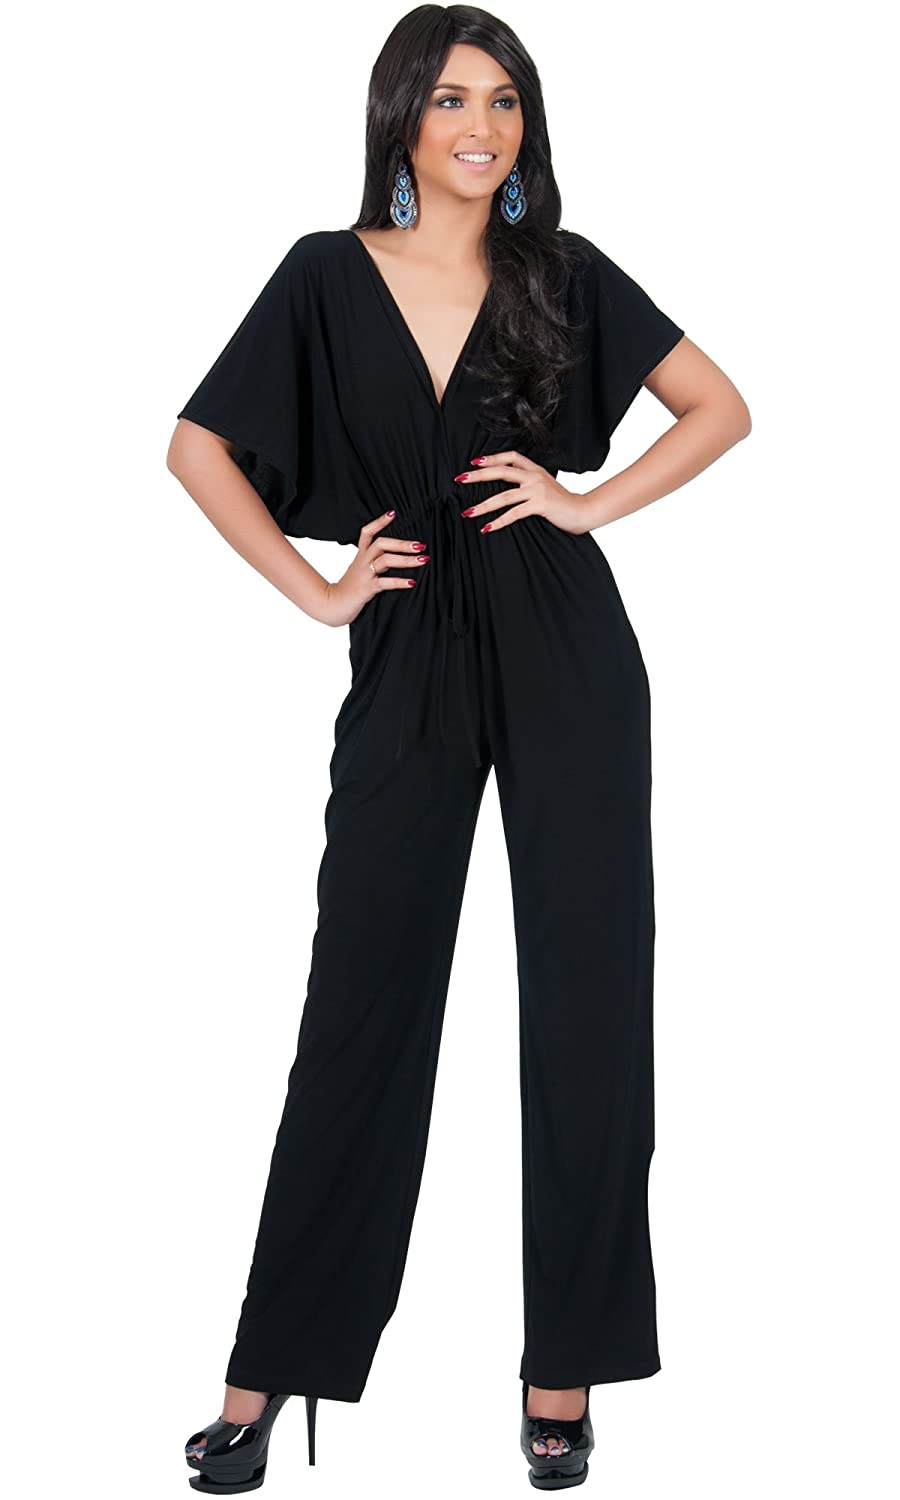 5e694c1d649 FABRIC TYPE - Matte Jersey (5% Spandex) GARMENT CARE - Hand or machine  washable. Can be dry-cleaned if desired. PLUS SIZE - This great jumpsuit  design also ...